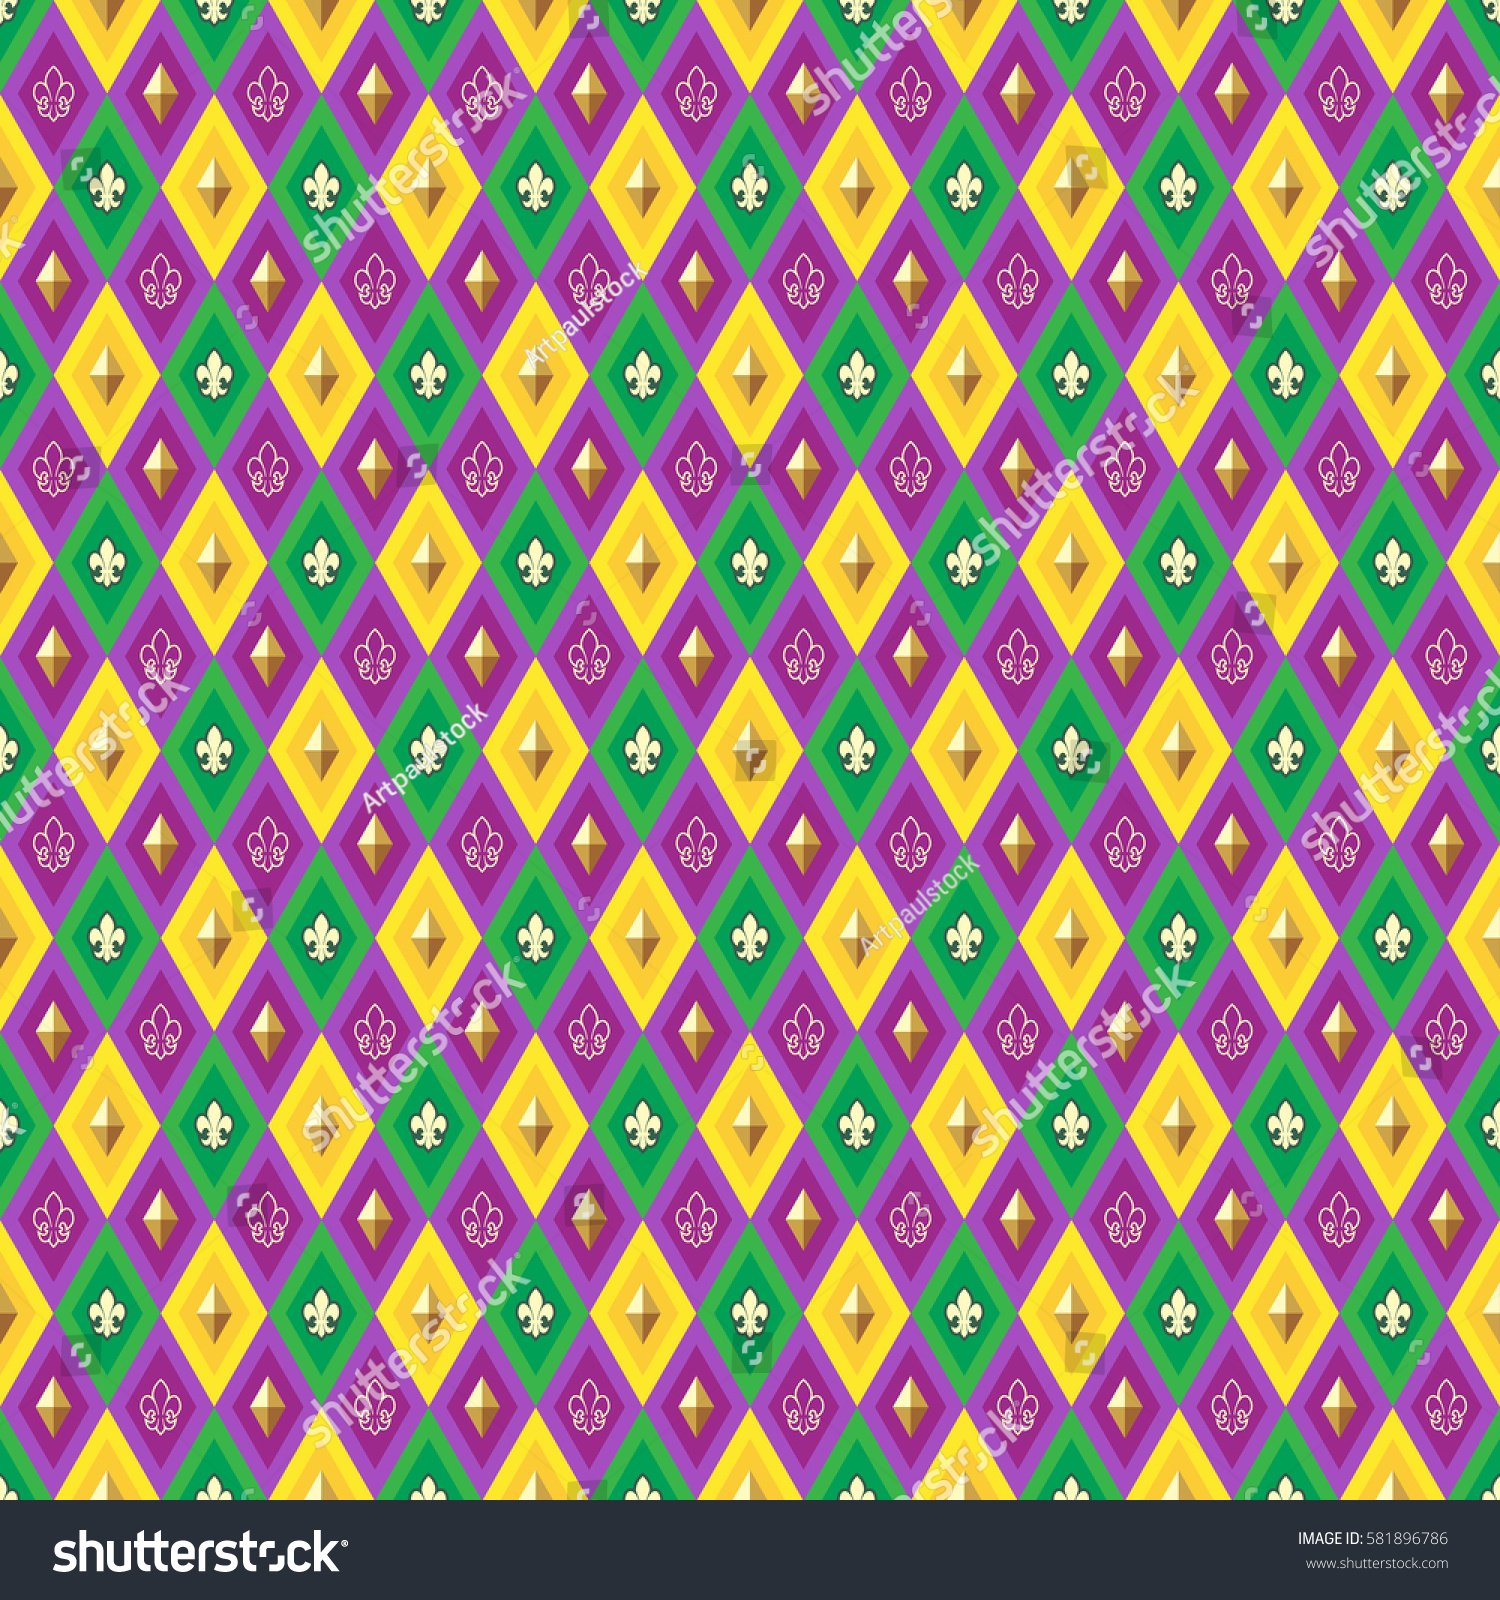 mardi gras background greeting cards textiles stock vector (royalty